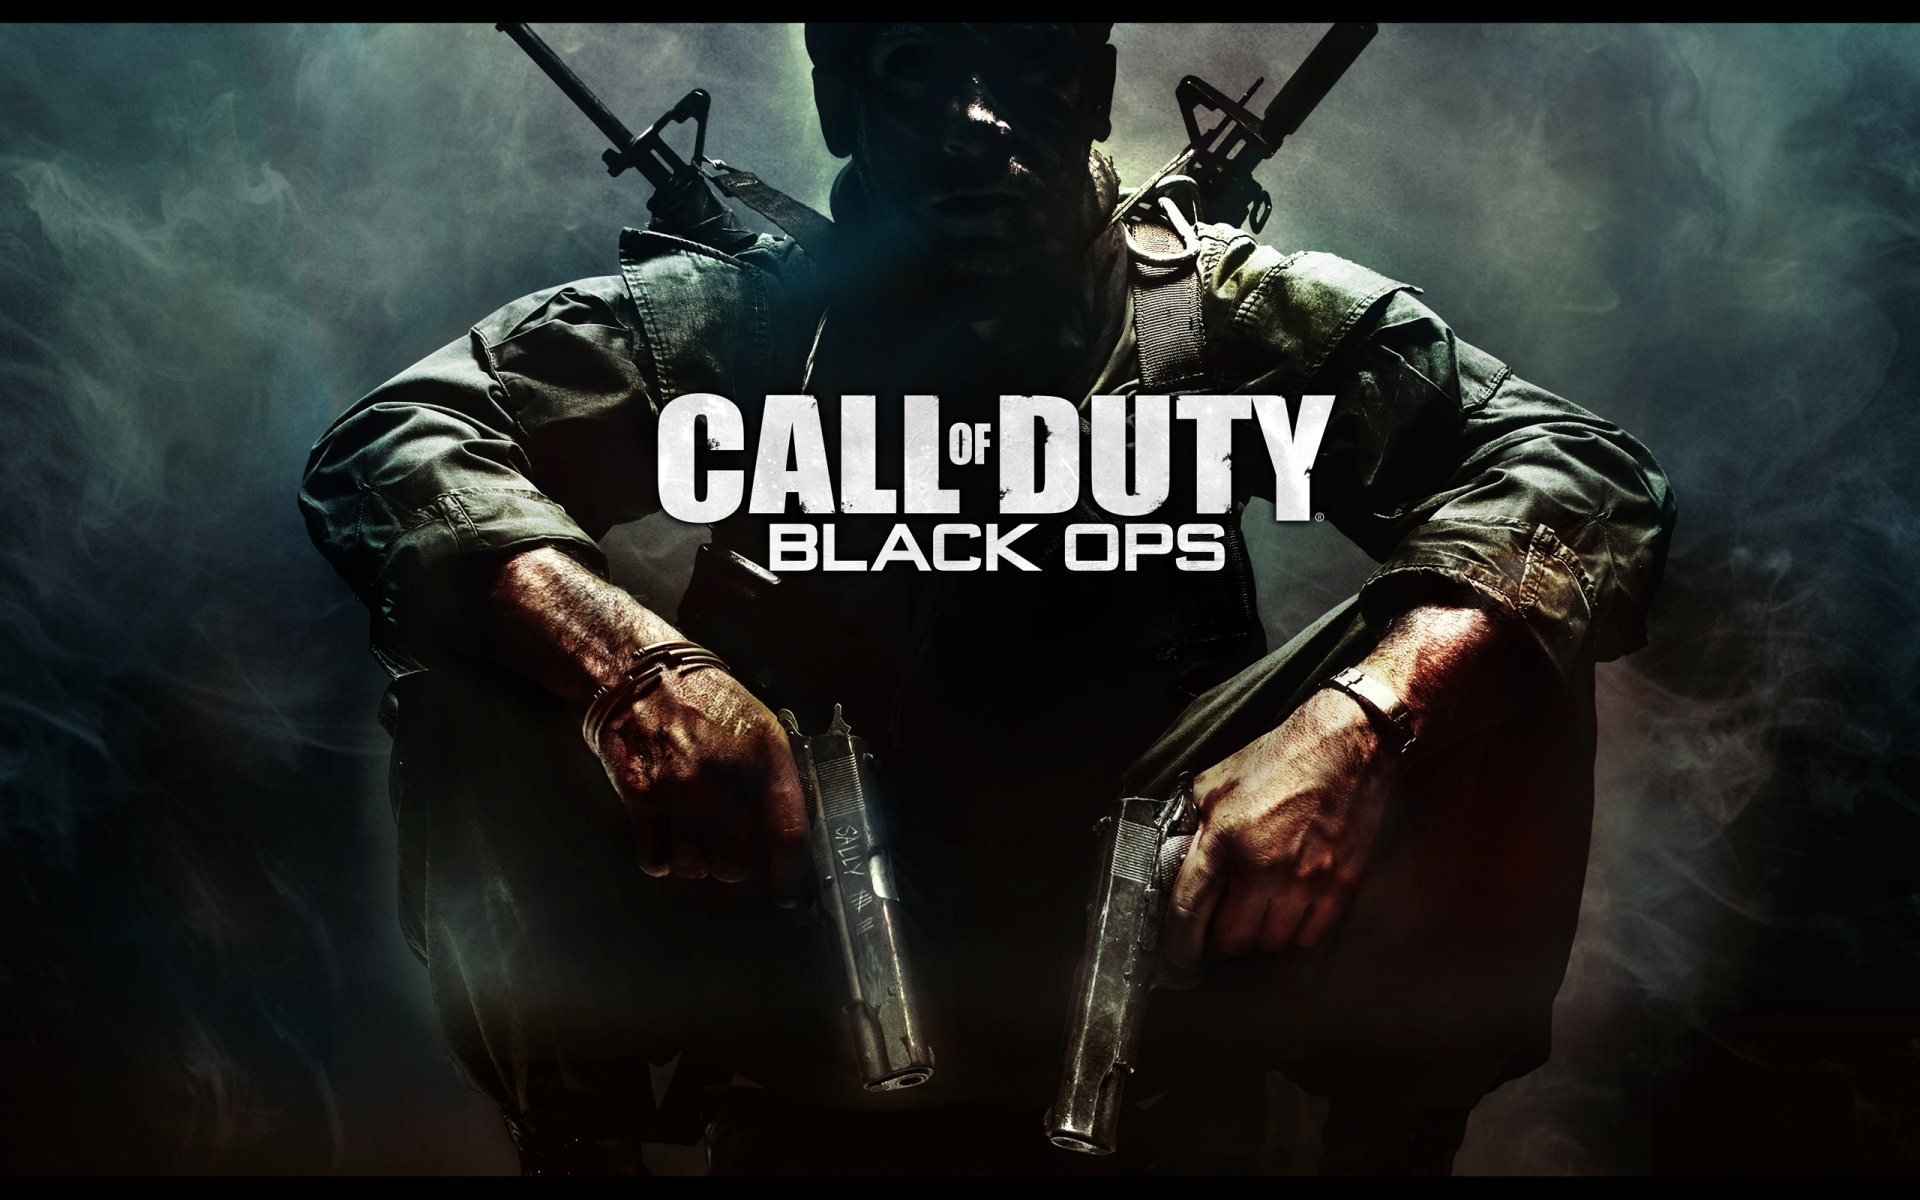 20 Call Of Duty Black Ops Hd Wallpapers Background Images